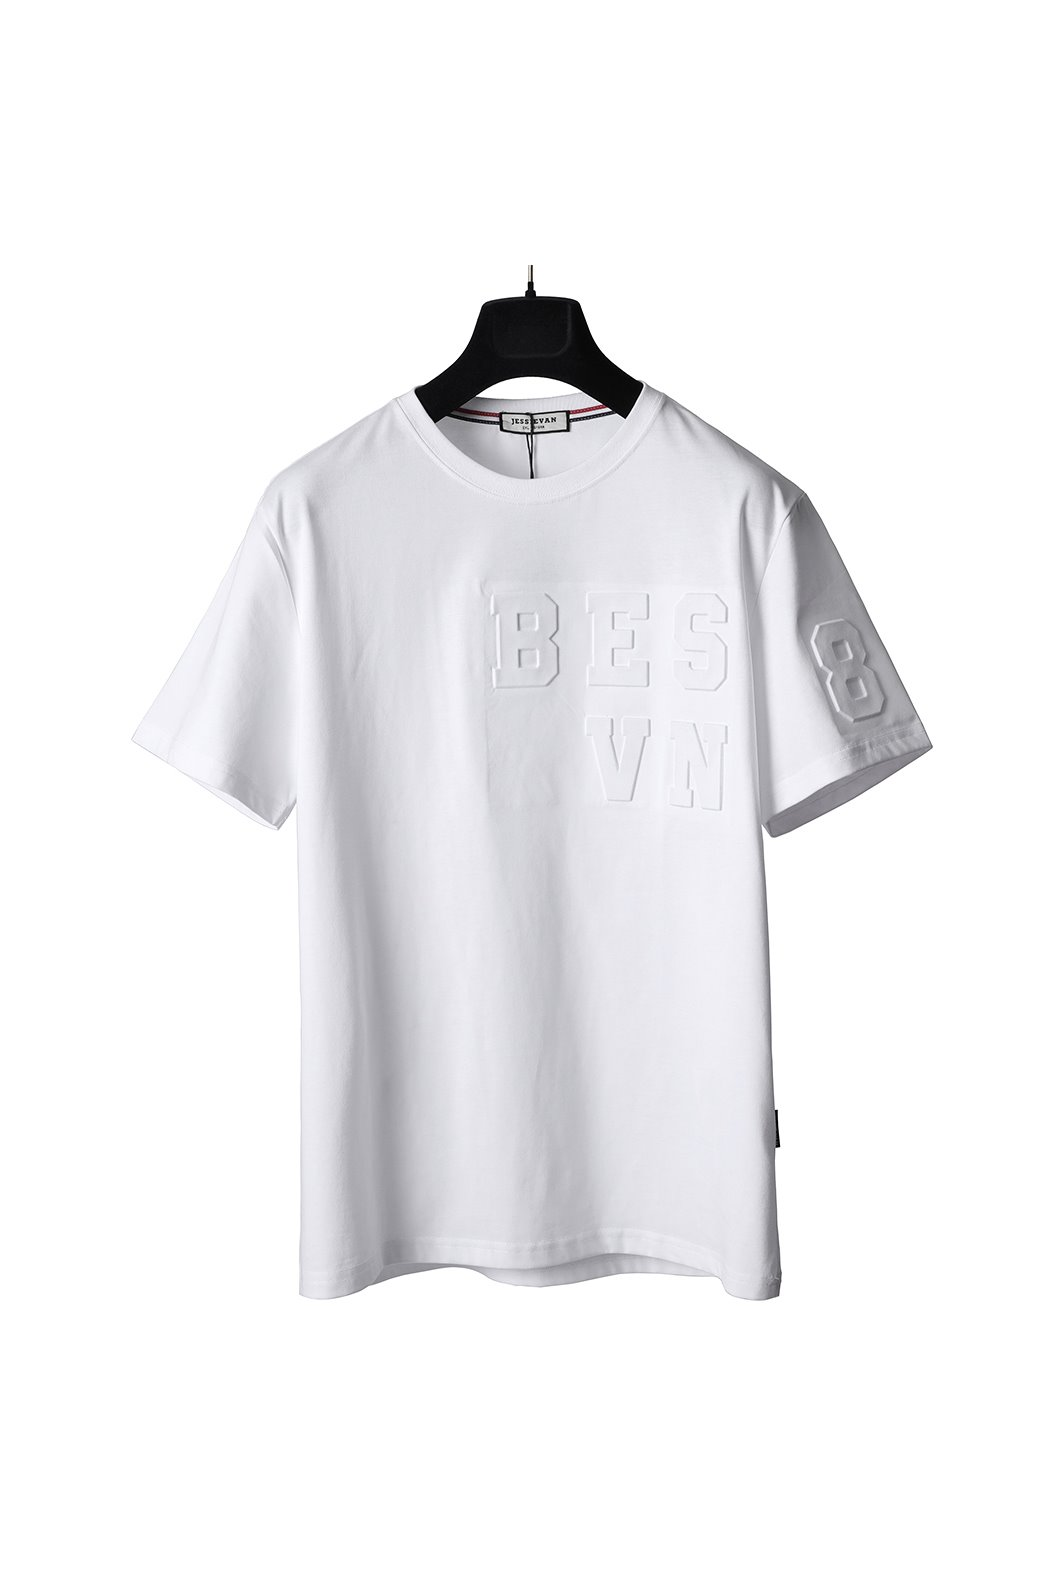 BESVN T-Shirts-2Color